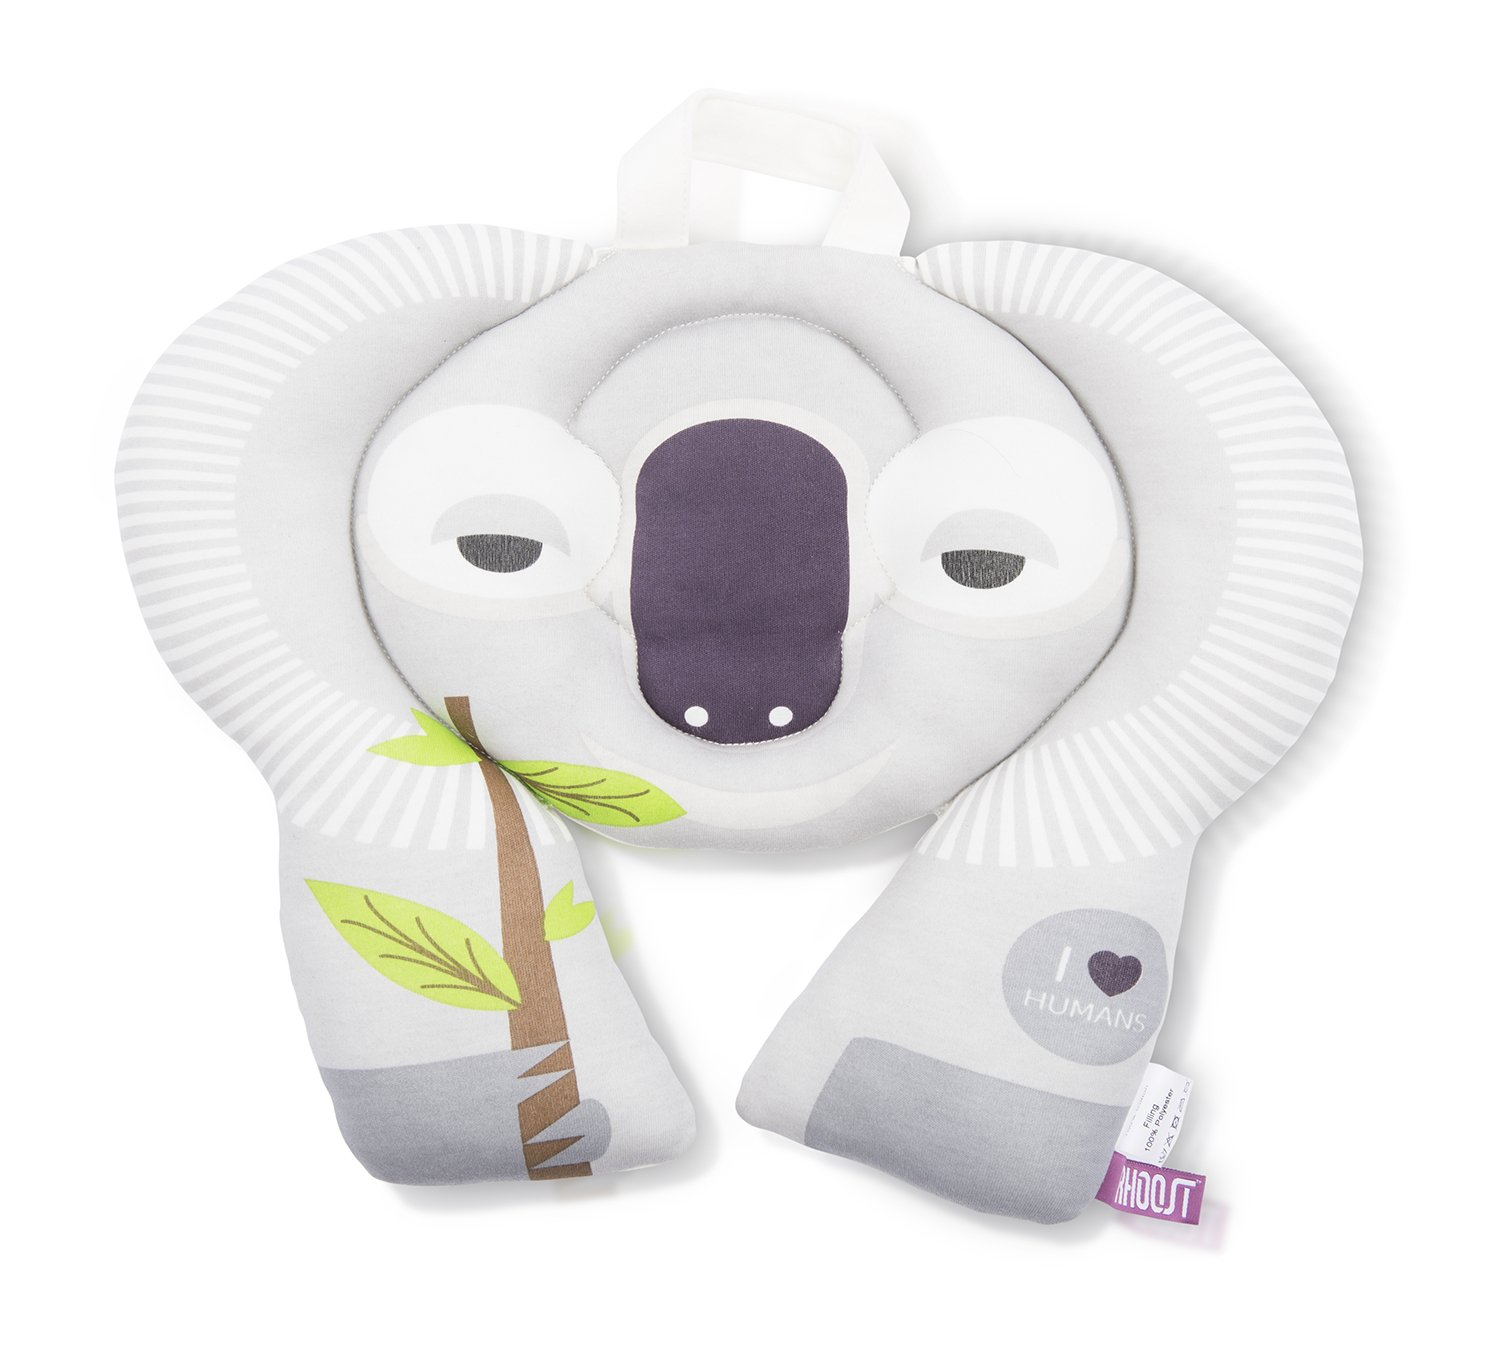 Rhoost Toddler Travel Buddy Neck Rest. Head Support for Kids on Car & Airplane Journeys. Fun Koala or Owl design with Pockets & Name Badge